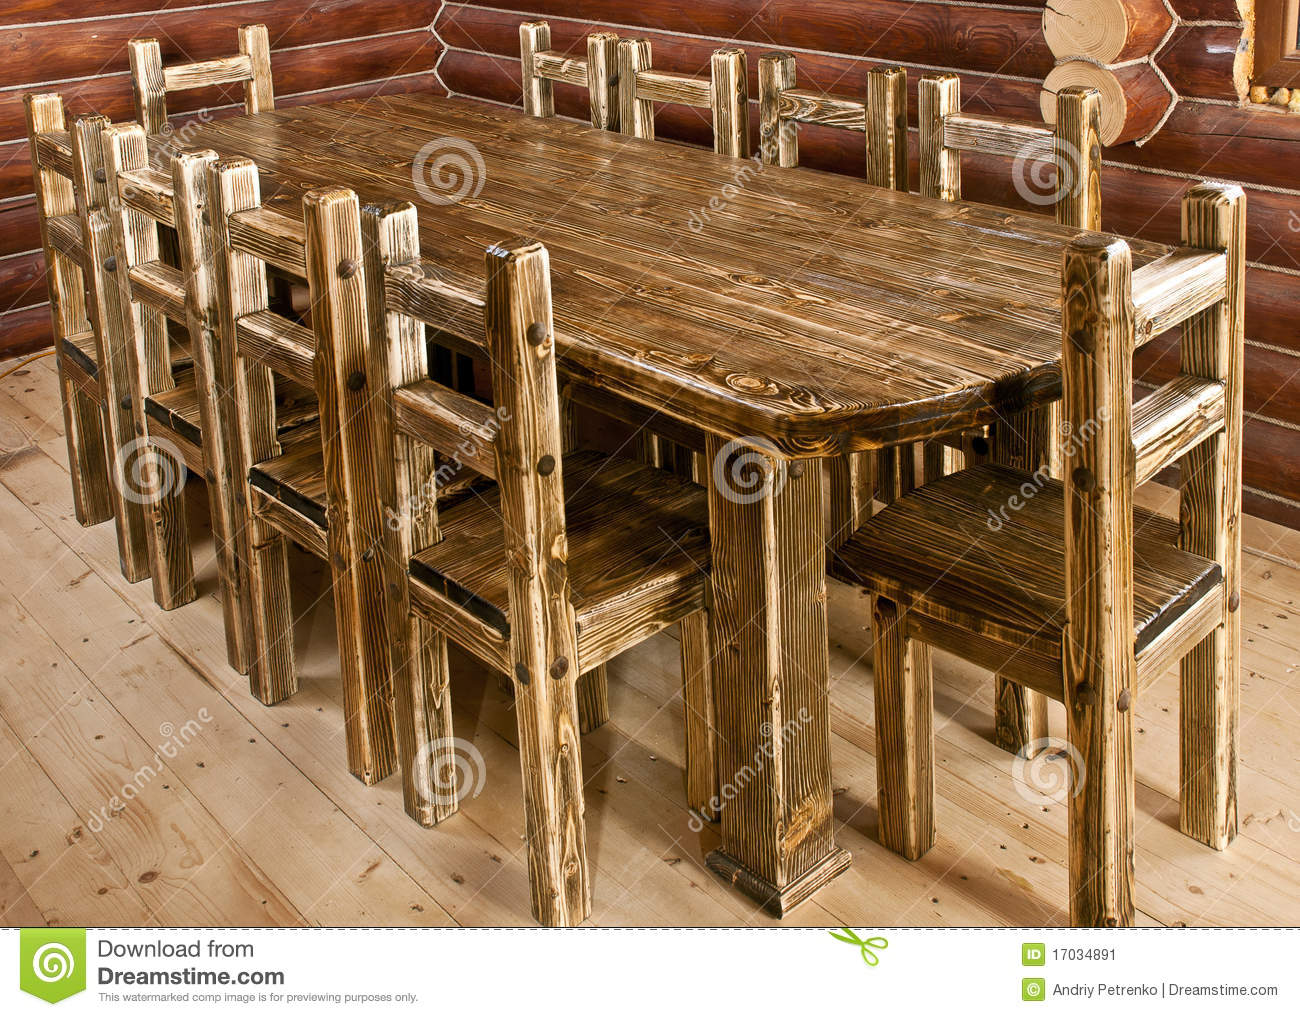 Grande table de cuisine fabriqu e la main image stock image 17034891 for Grande table de cuisine